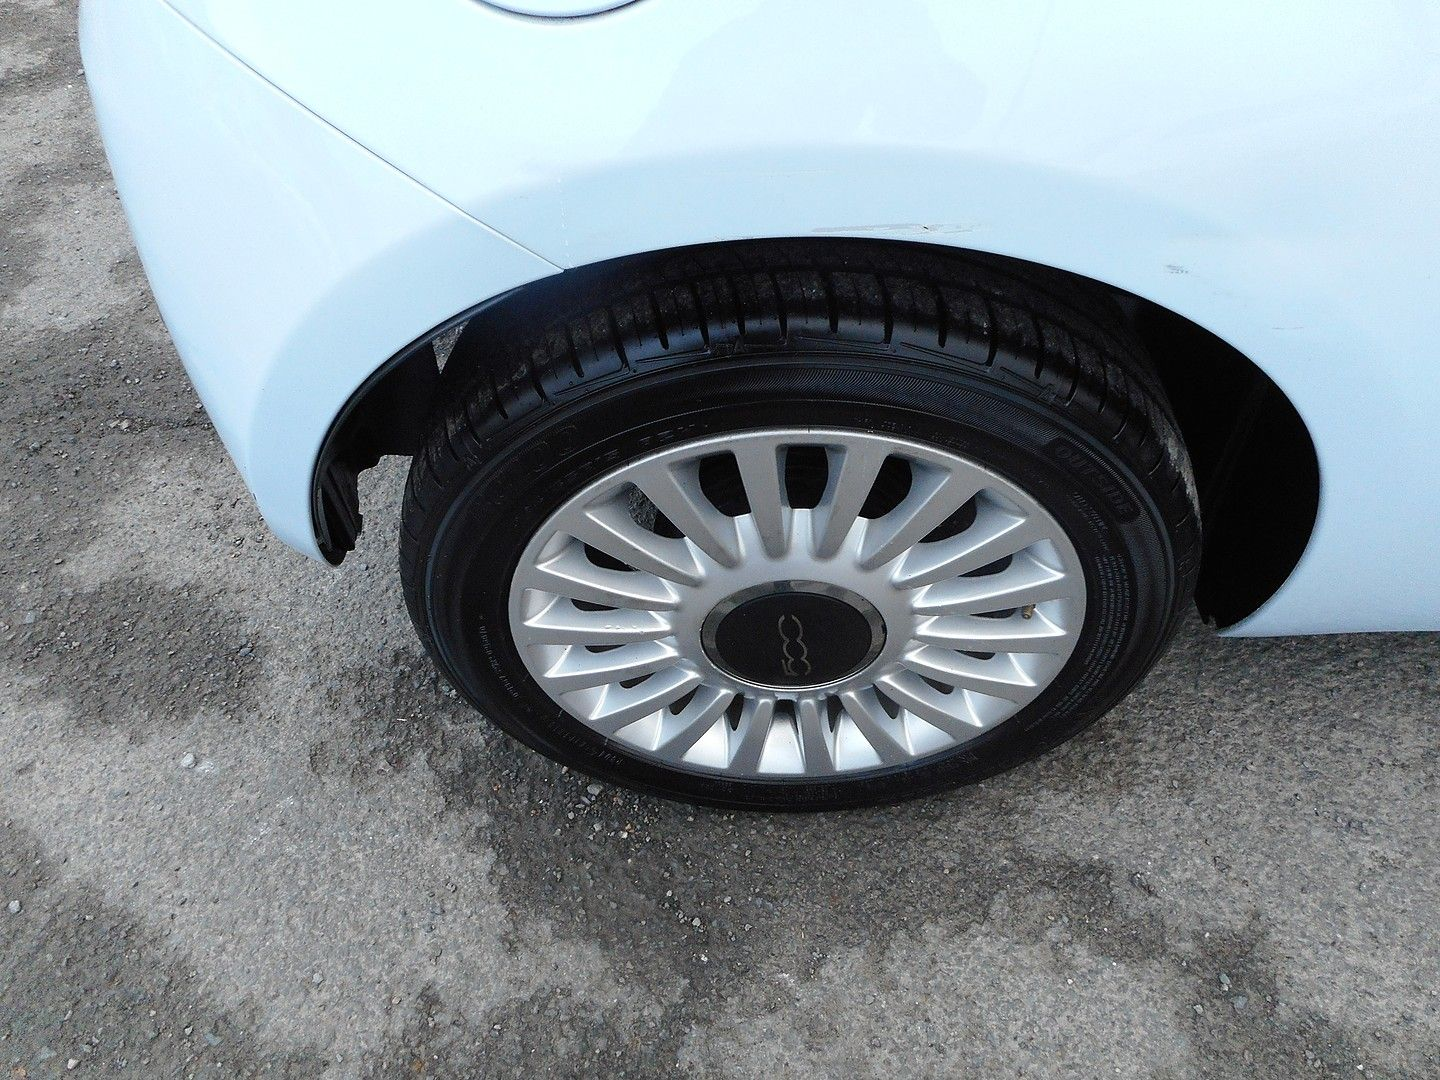 FIAT 500 1.2i Lounge (2010) - Picture 5